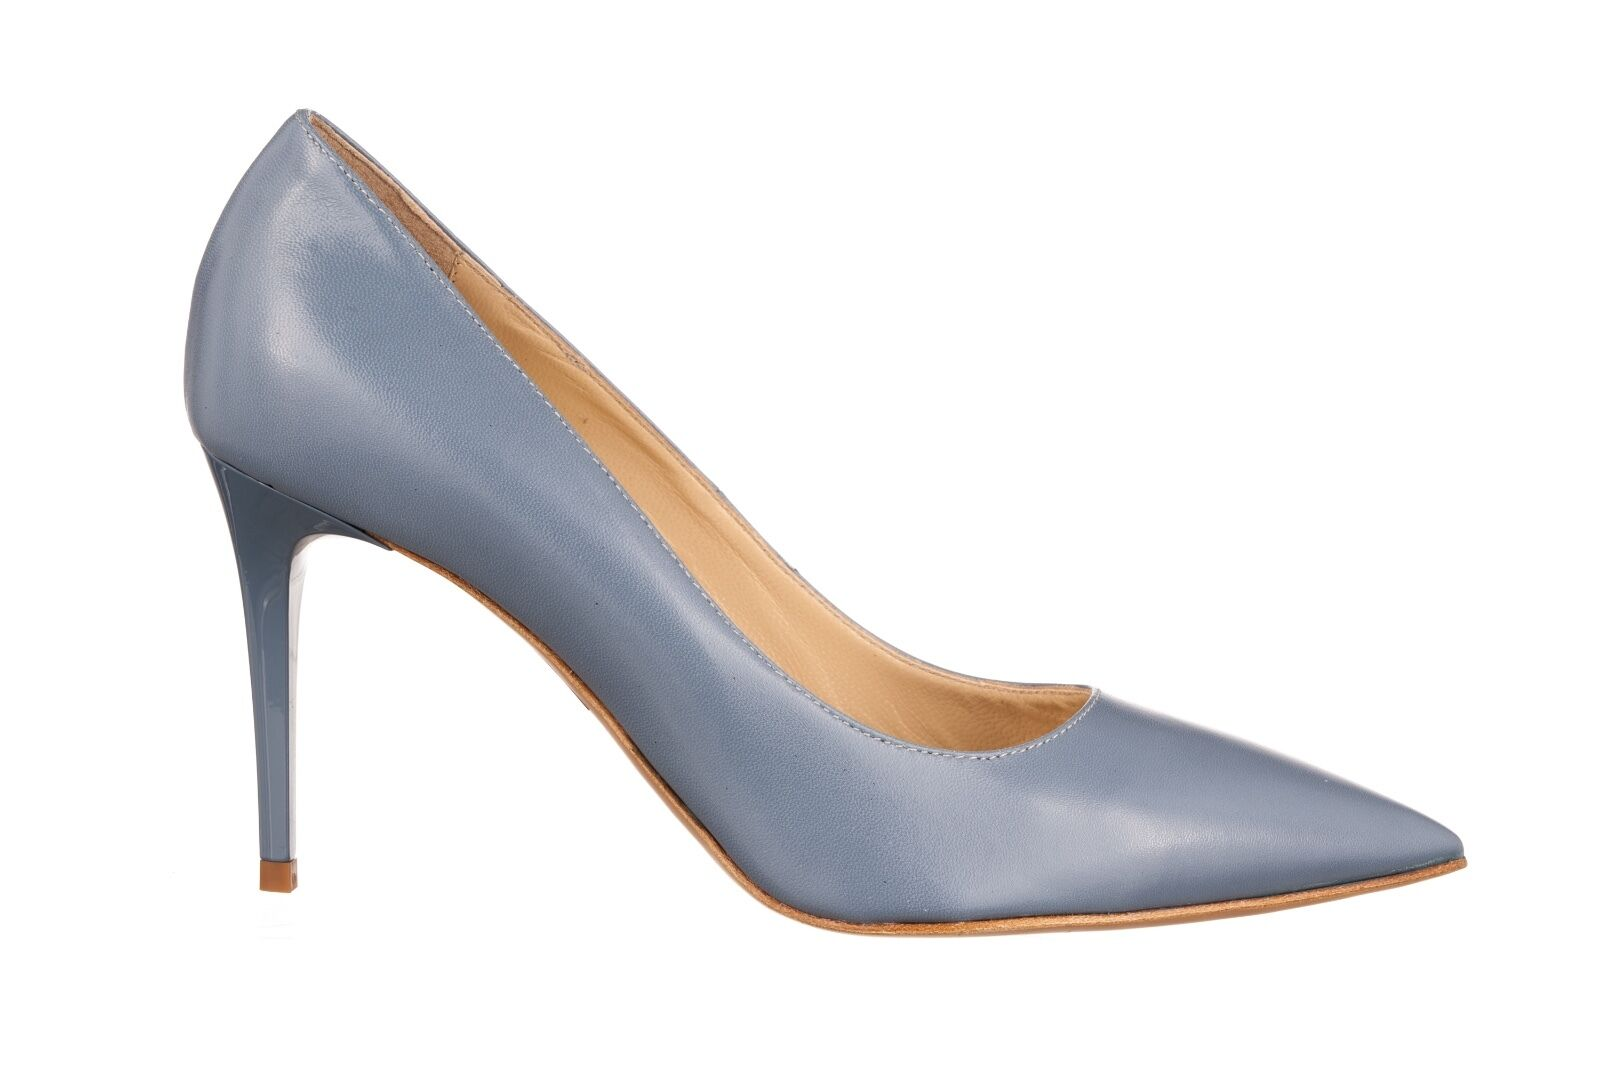 MORI MADE IN ITALY POINTY HIGH HEELS PUMPS GRIGIO DECOLTE SCHUHE LEATHER GREY GRIGIO PUMPS 39 821493